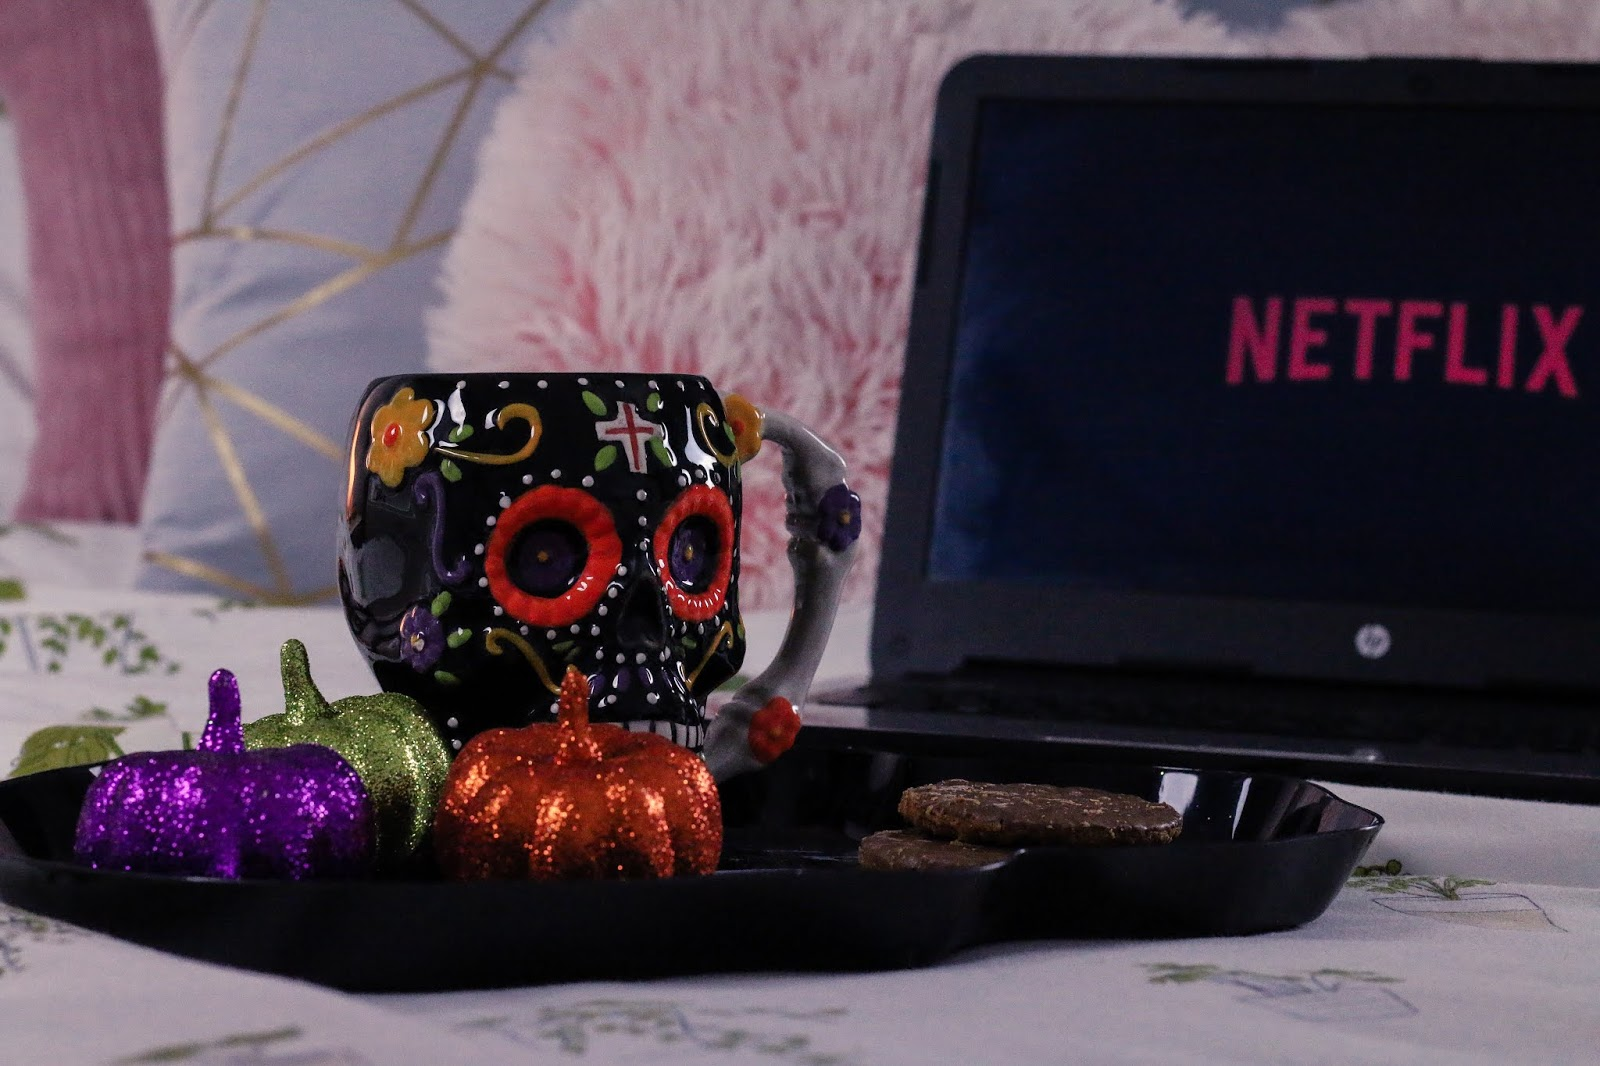 Extreme Close up of a sugar skull tea mug on a black skull tray with three pumpkin ornaments next to it, one orange, one green and one purple. The tray is sitting on a bed with a laptop in the background which is blurred as the mug is in focus, taken side on.